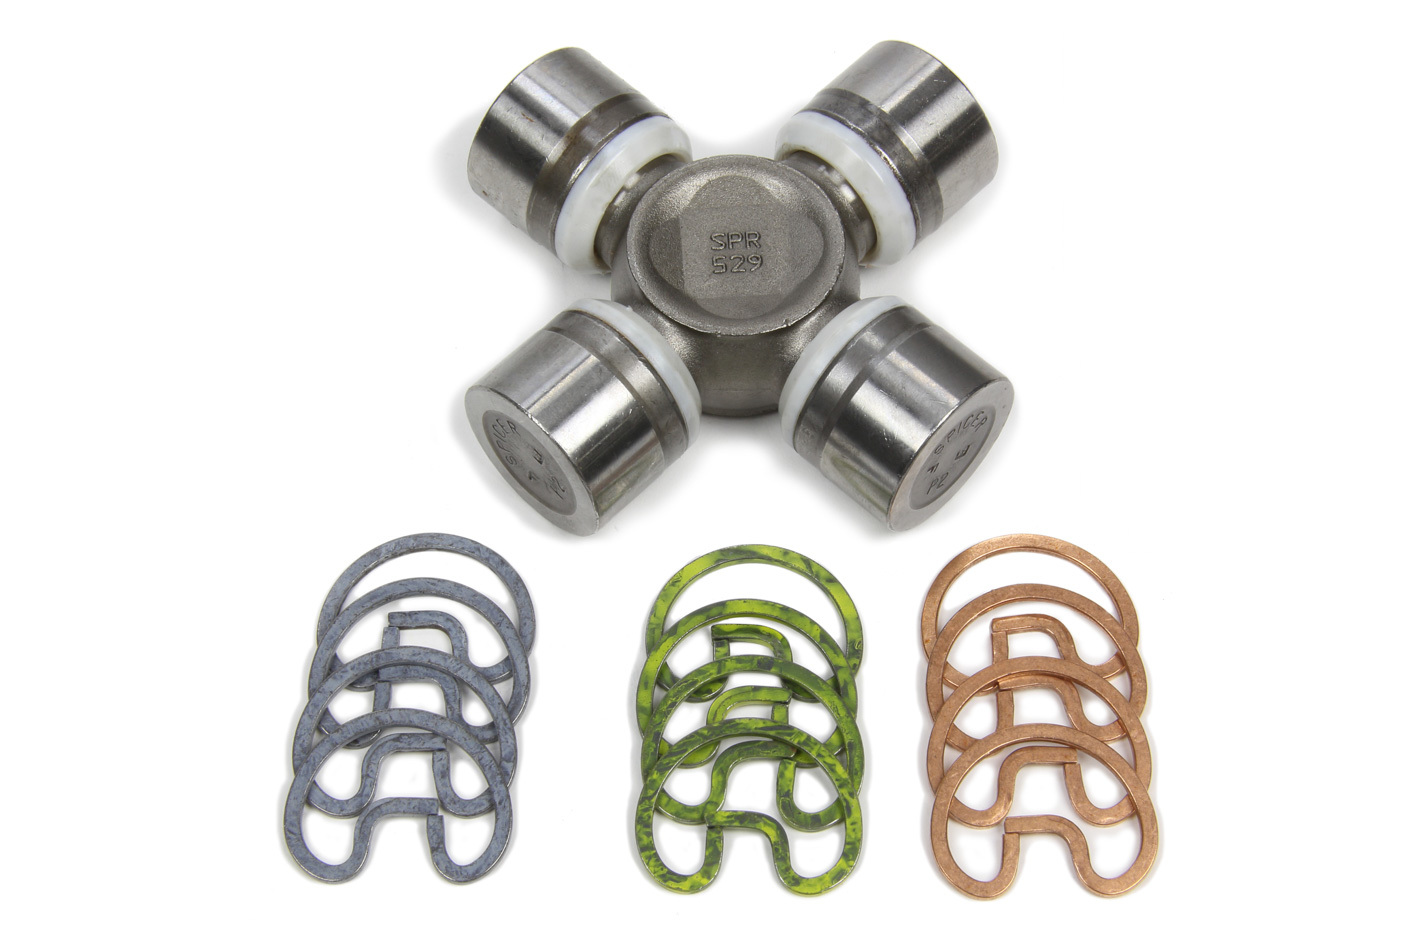 Ti22 Performance 4737 Universal Joint, 1310 Series, 3-1/4 in Across, 1-1/16 in Cap, Clips Included, Natural, Each